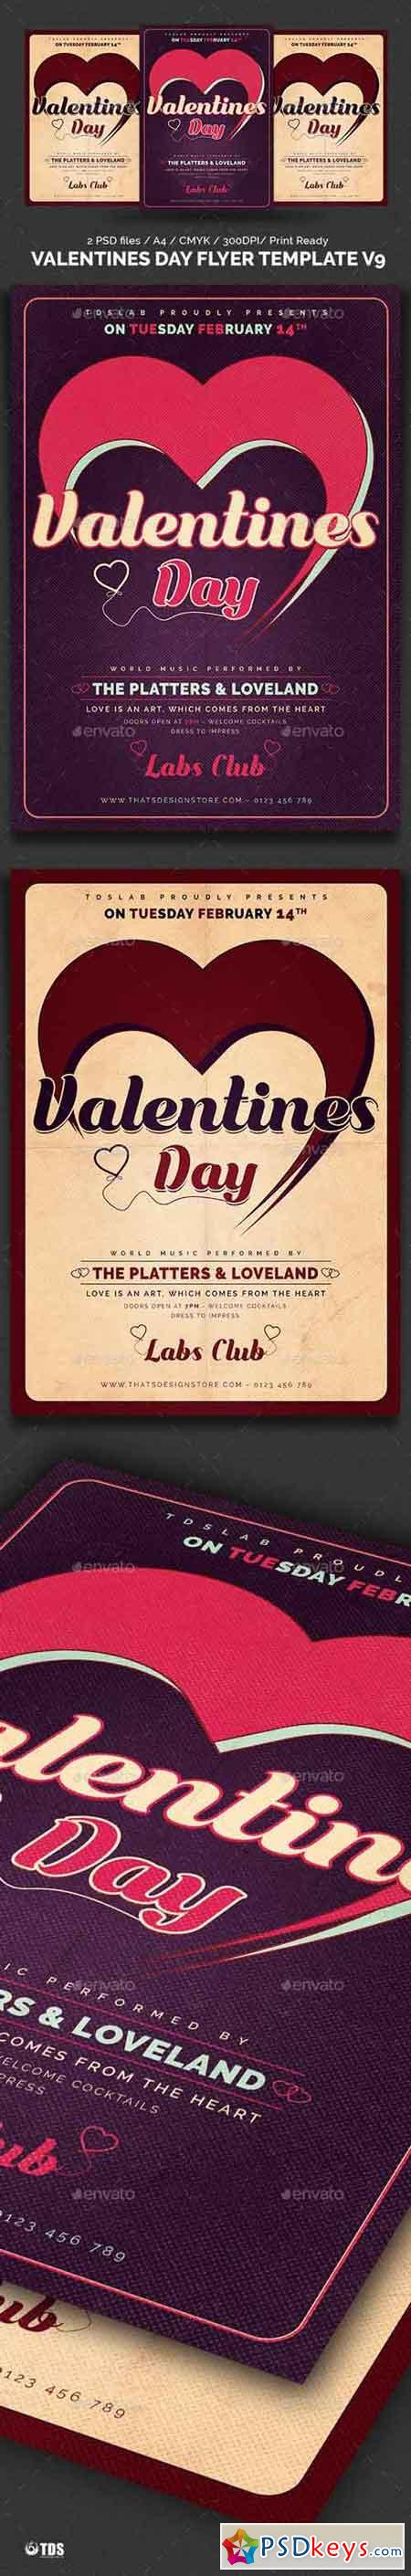 Valentines Day Flyer Template V9 19297035